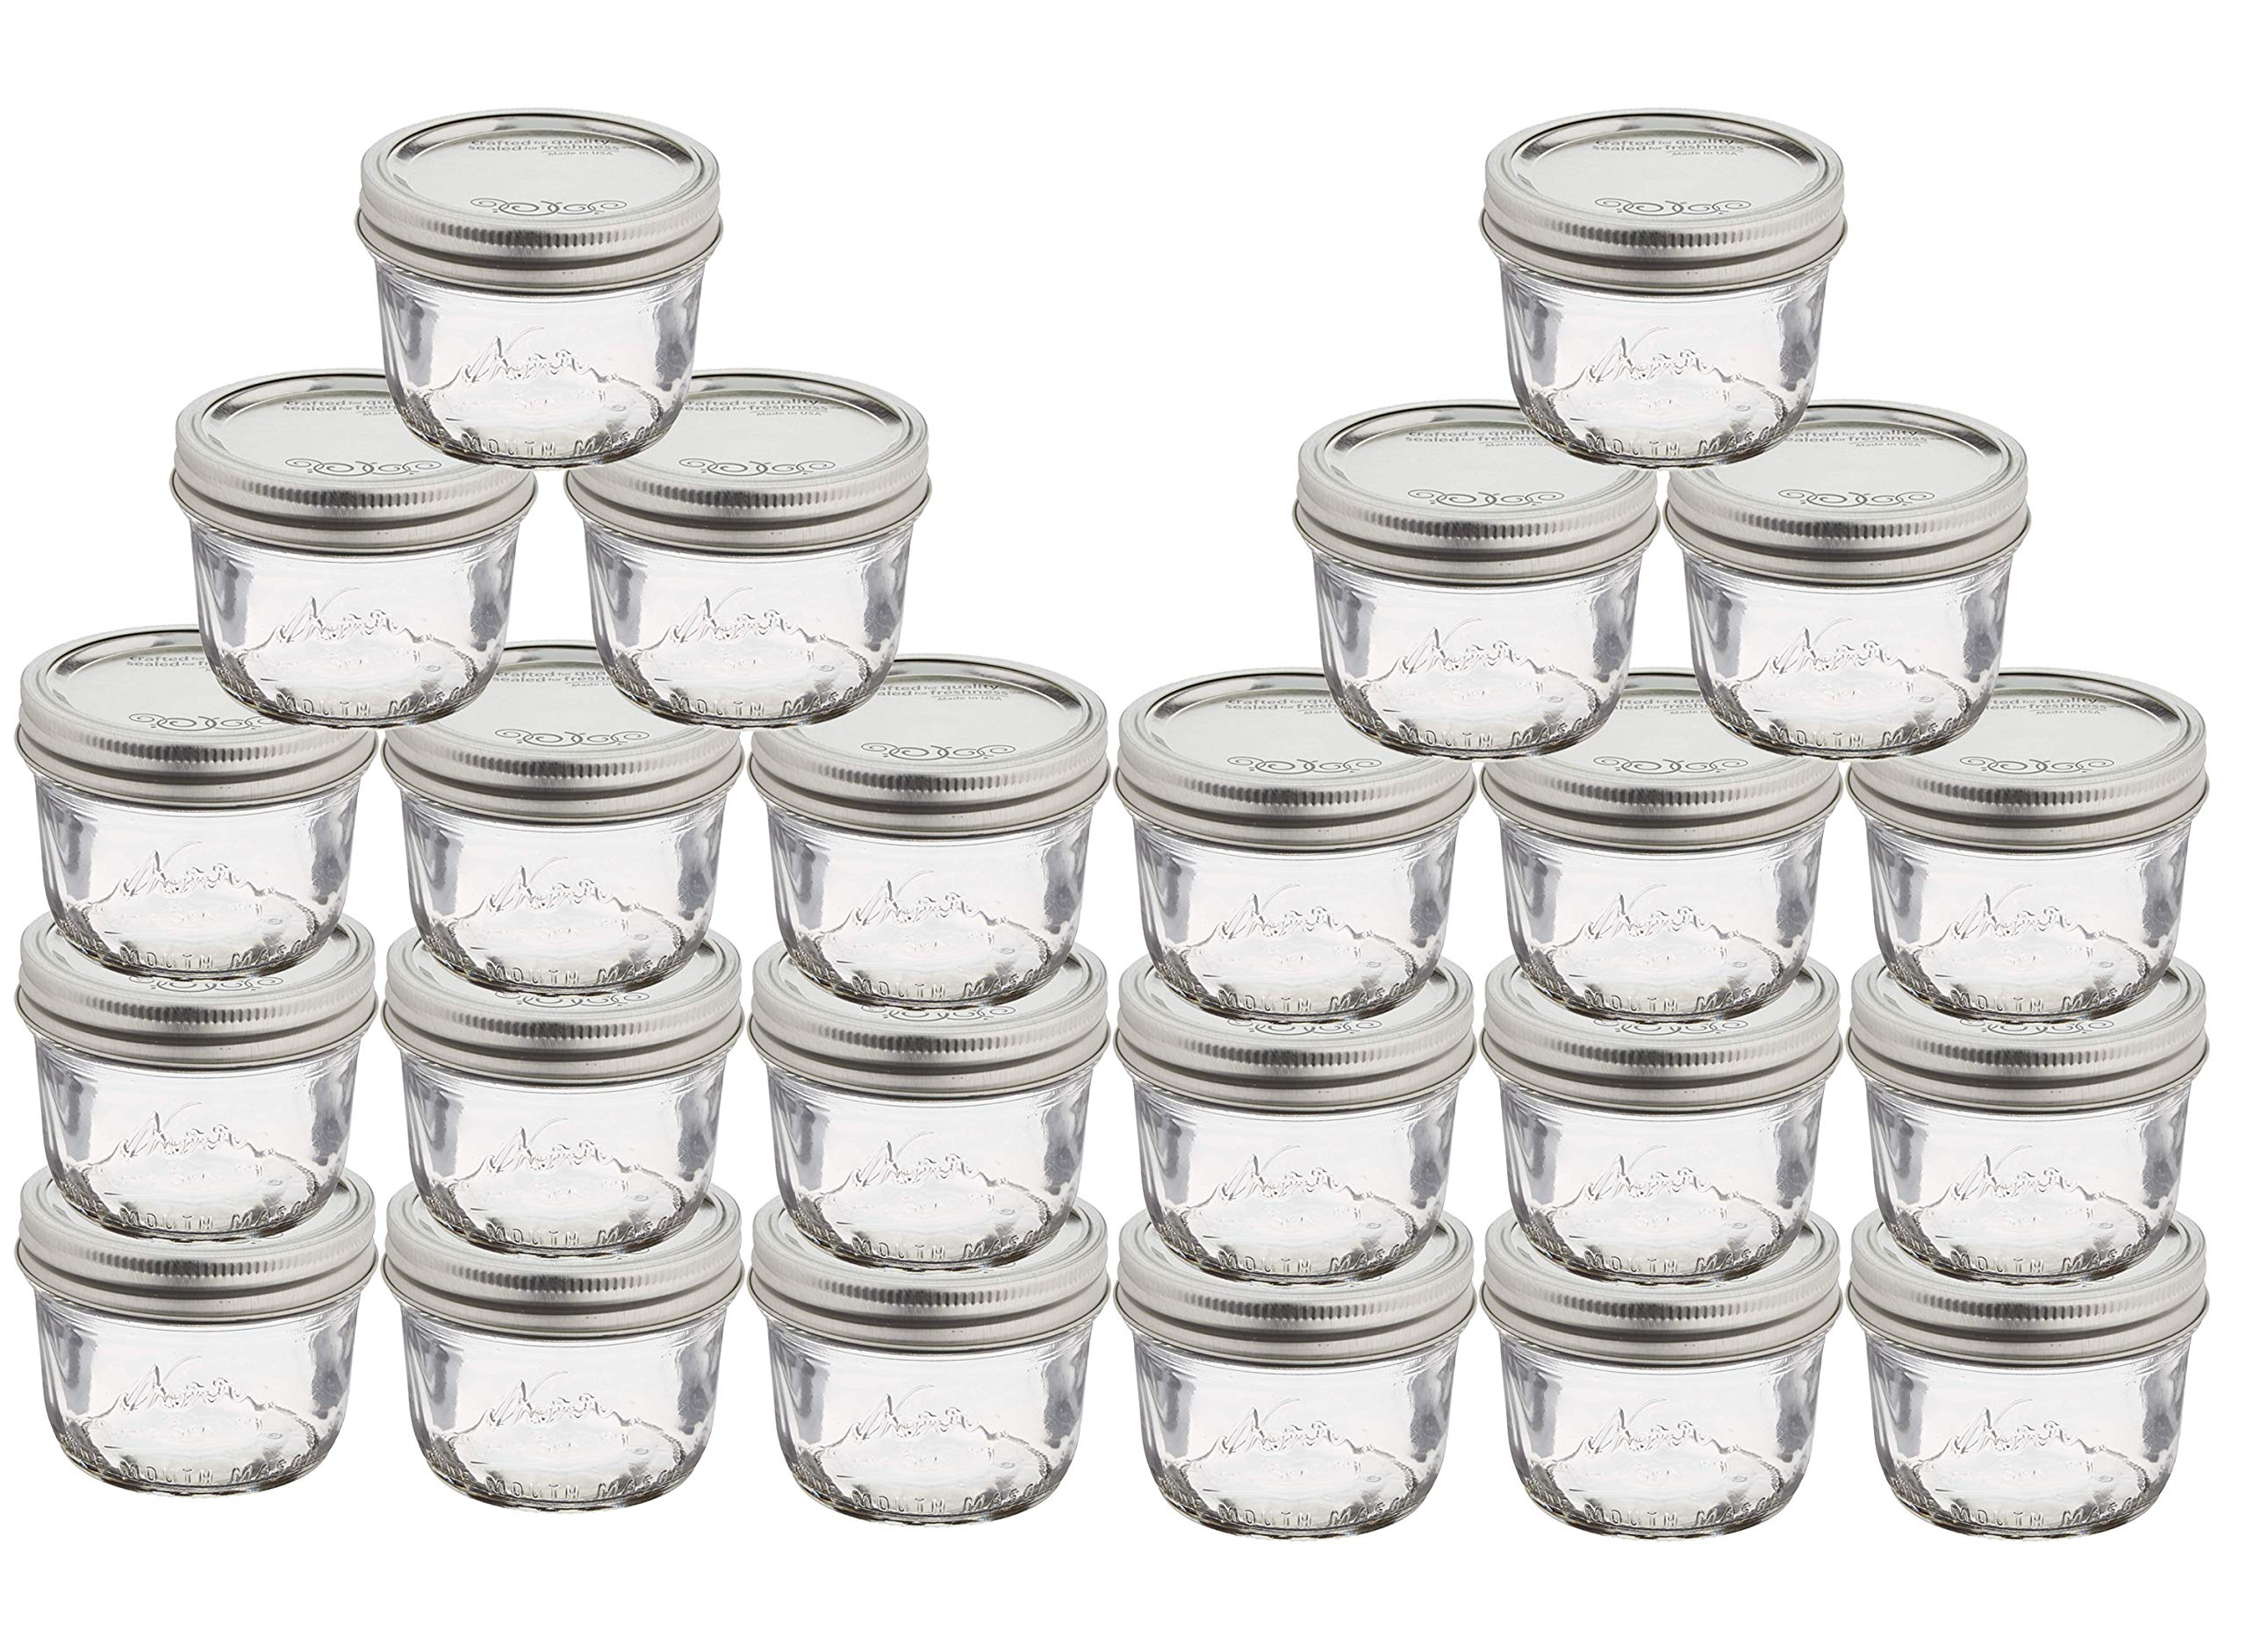 Jarden Kerr Wide Mouth Mason Canning Jars 8-Ounces with Lids and Bands (24 Jars)